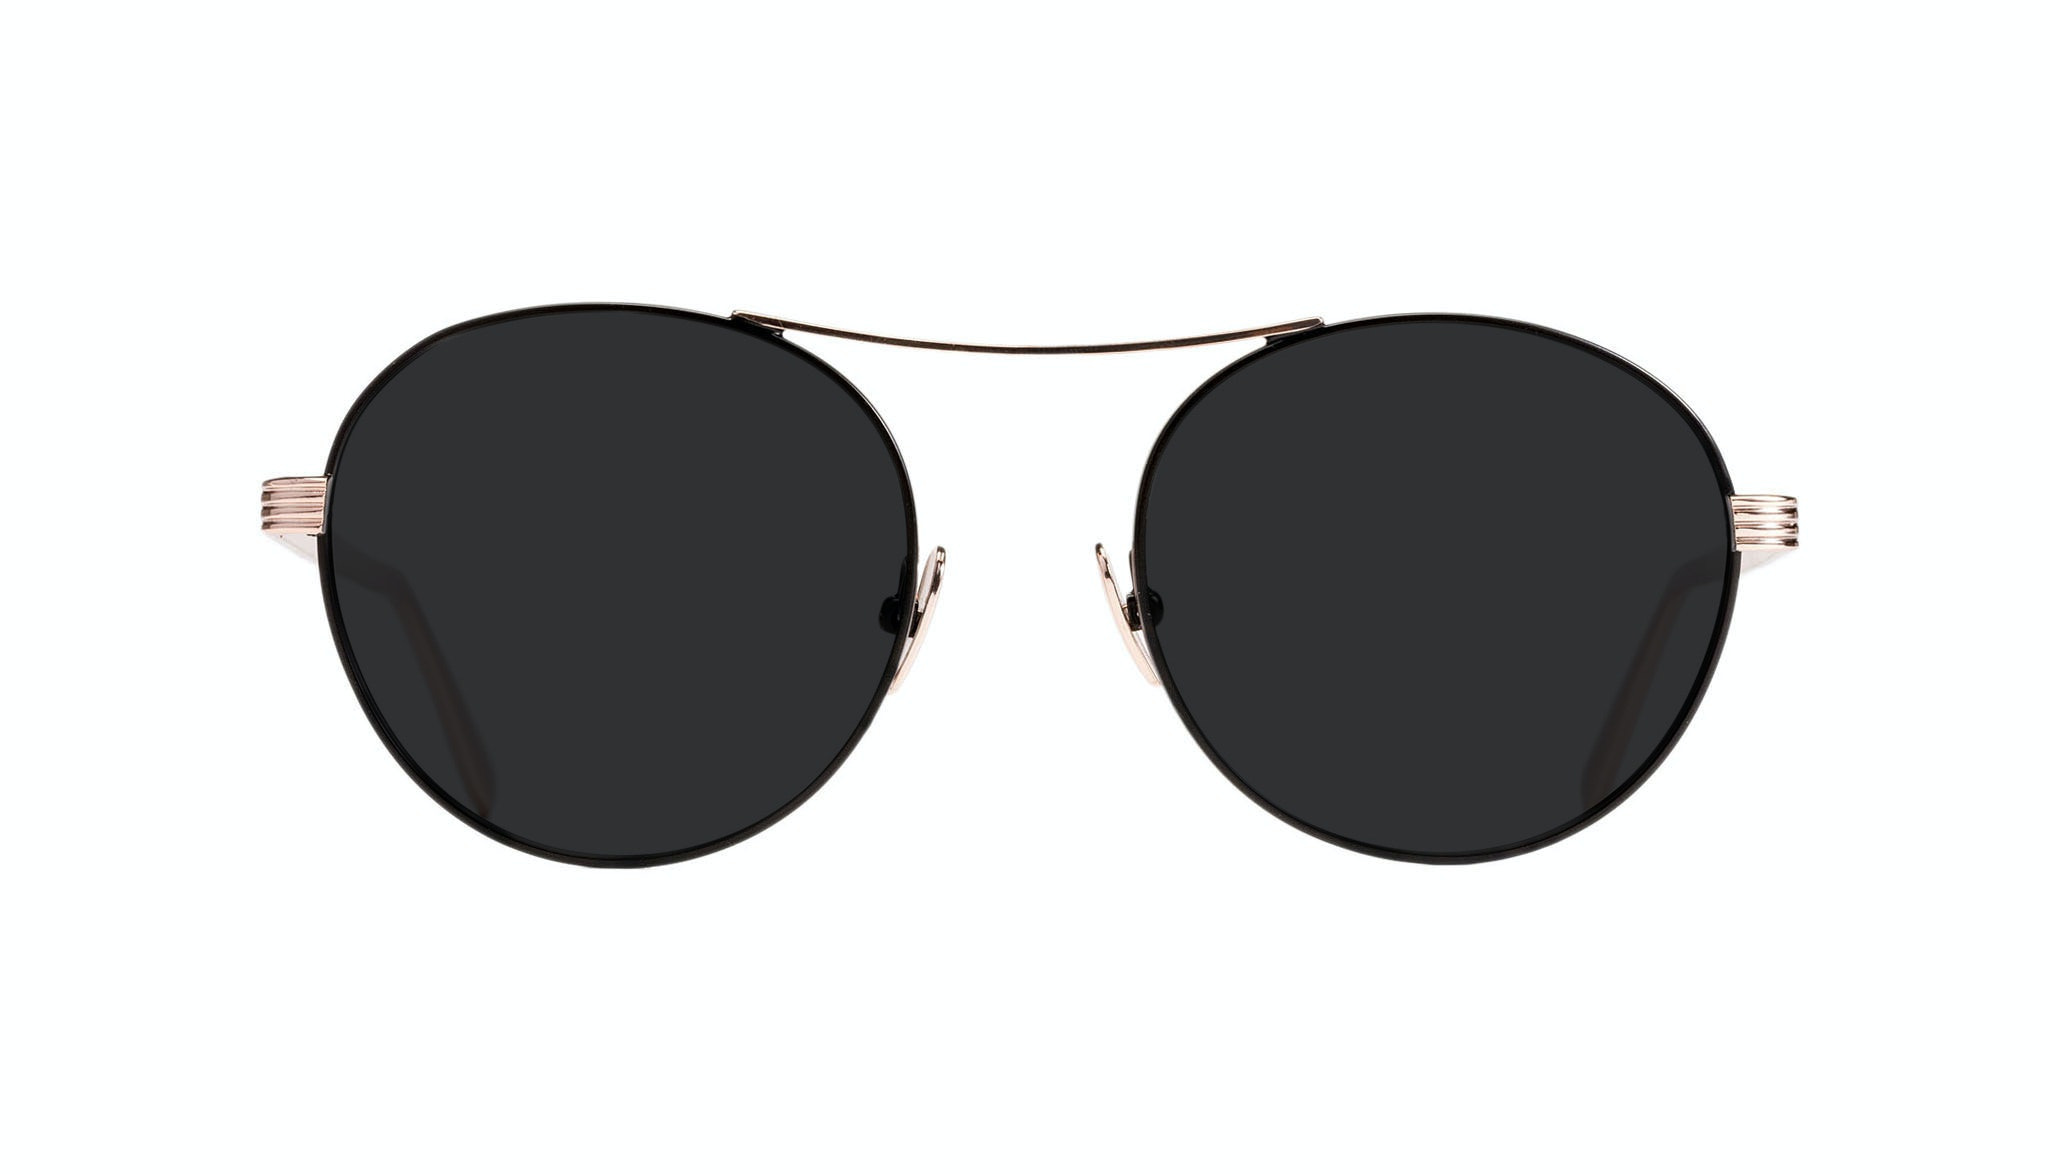 Affordable Fashion Glasses Round Sunglasses Women Prize Deep Gold Front